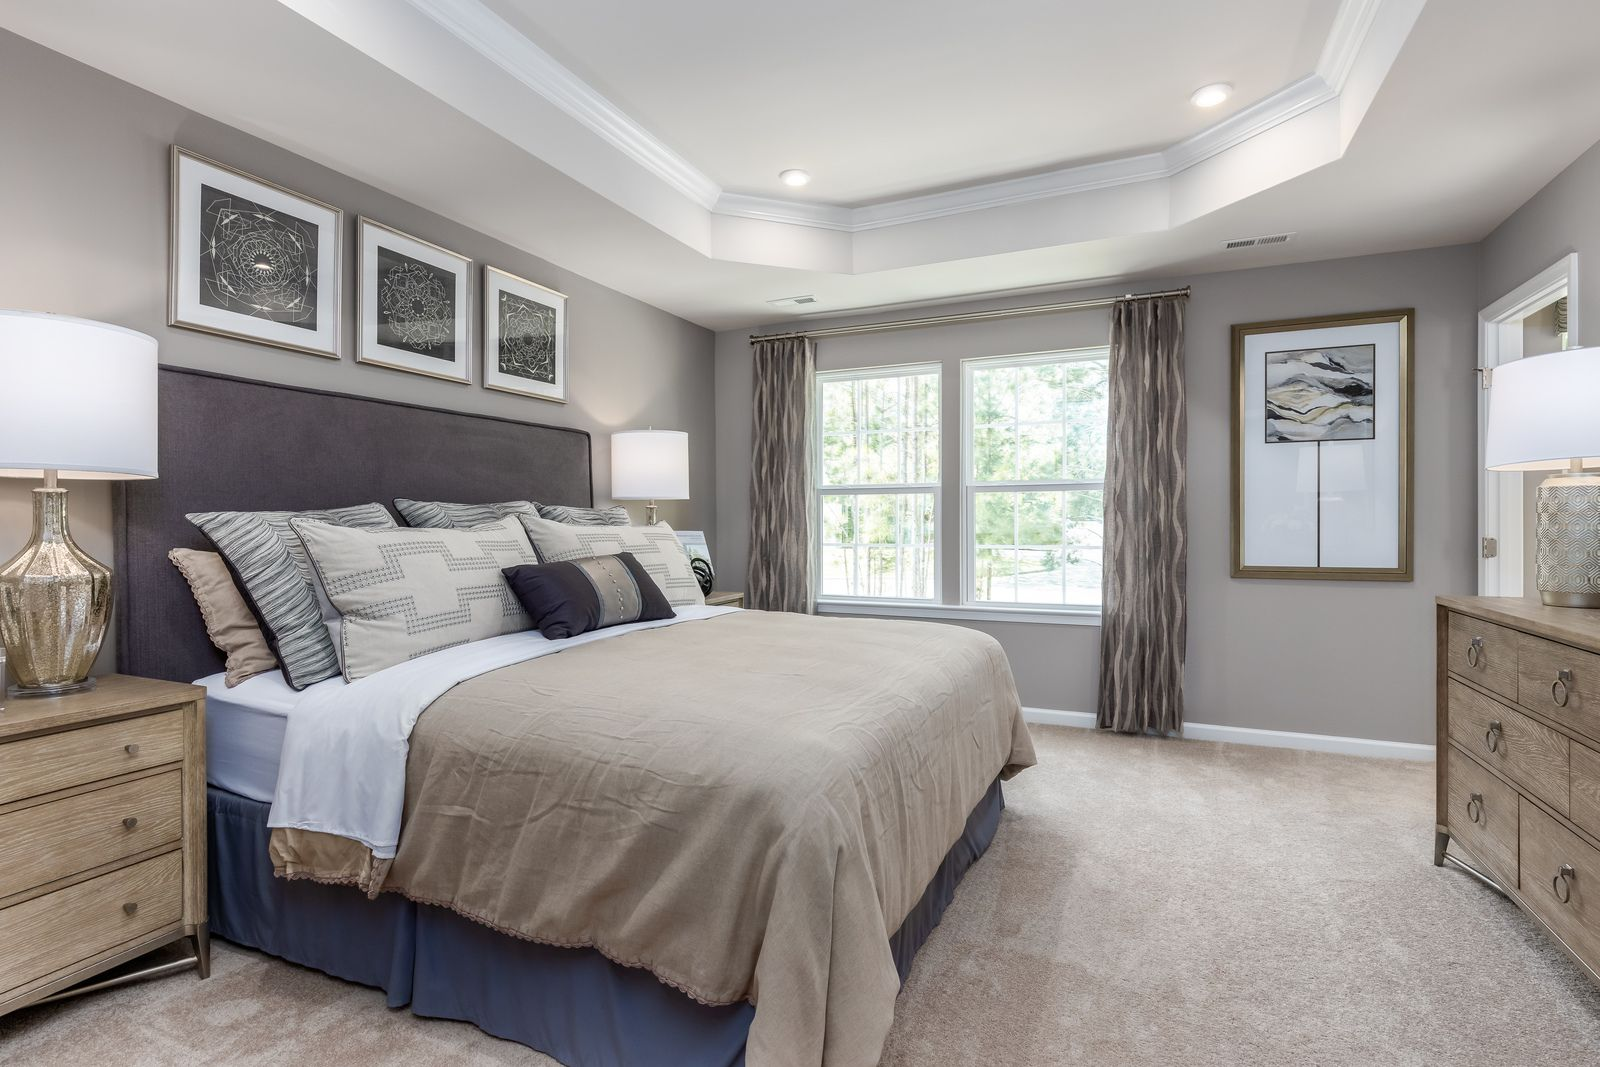 Bedroom featured in the Mozart Rear 2-Car Garage By Ryan Homes in Chicago, IL